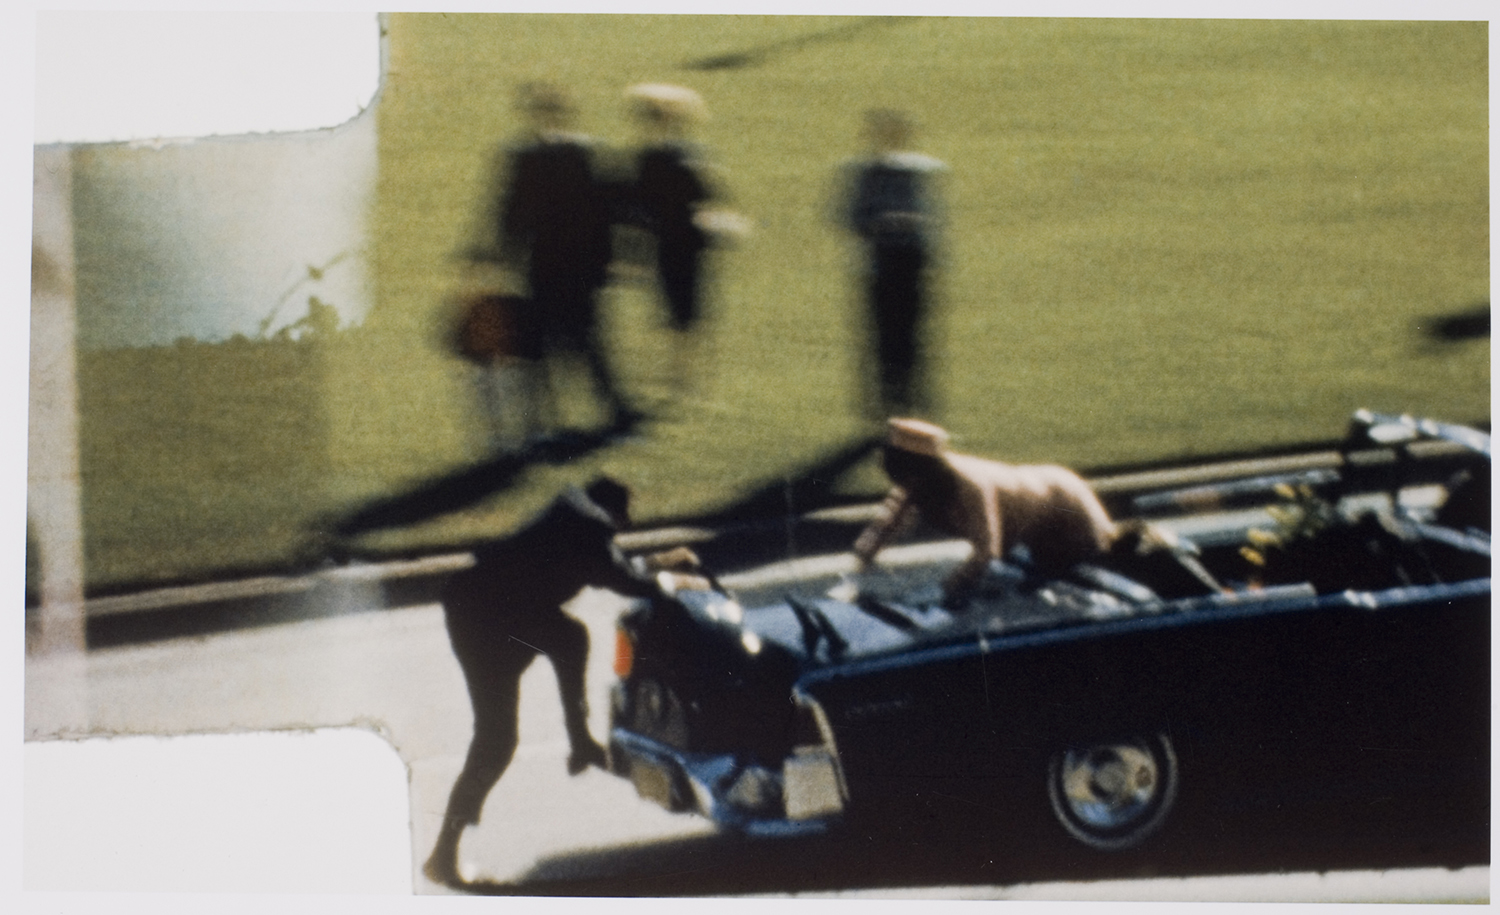 ... the assassination of President John F. Kennedy Jr.], November 22, 1963